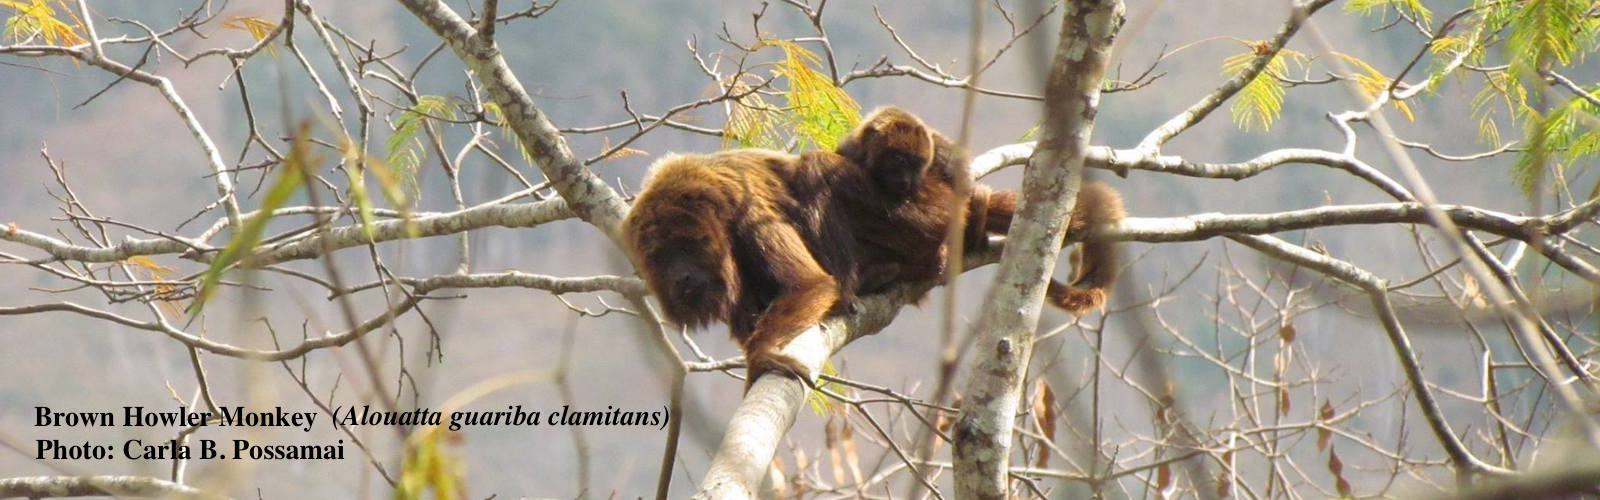 Brown Howler Monkey with baby